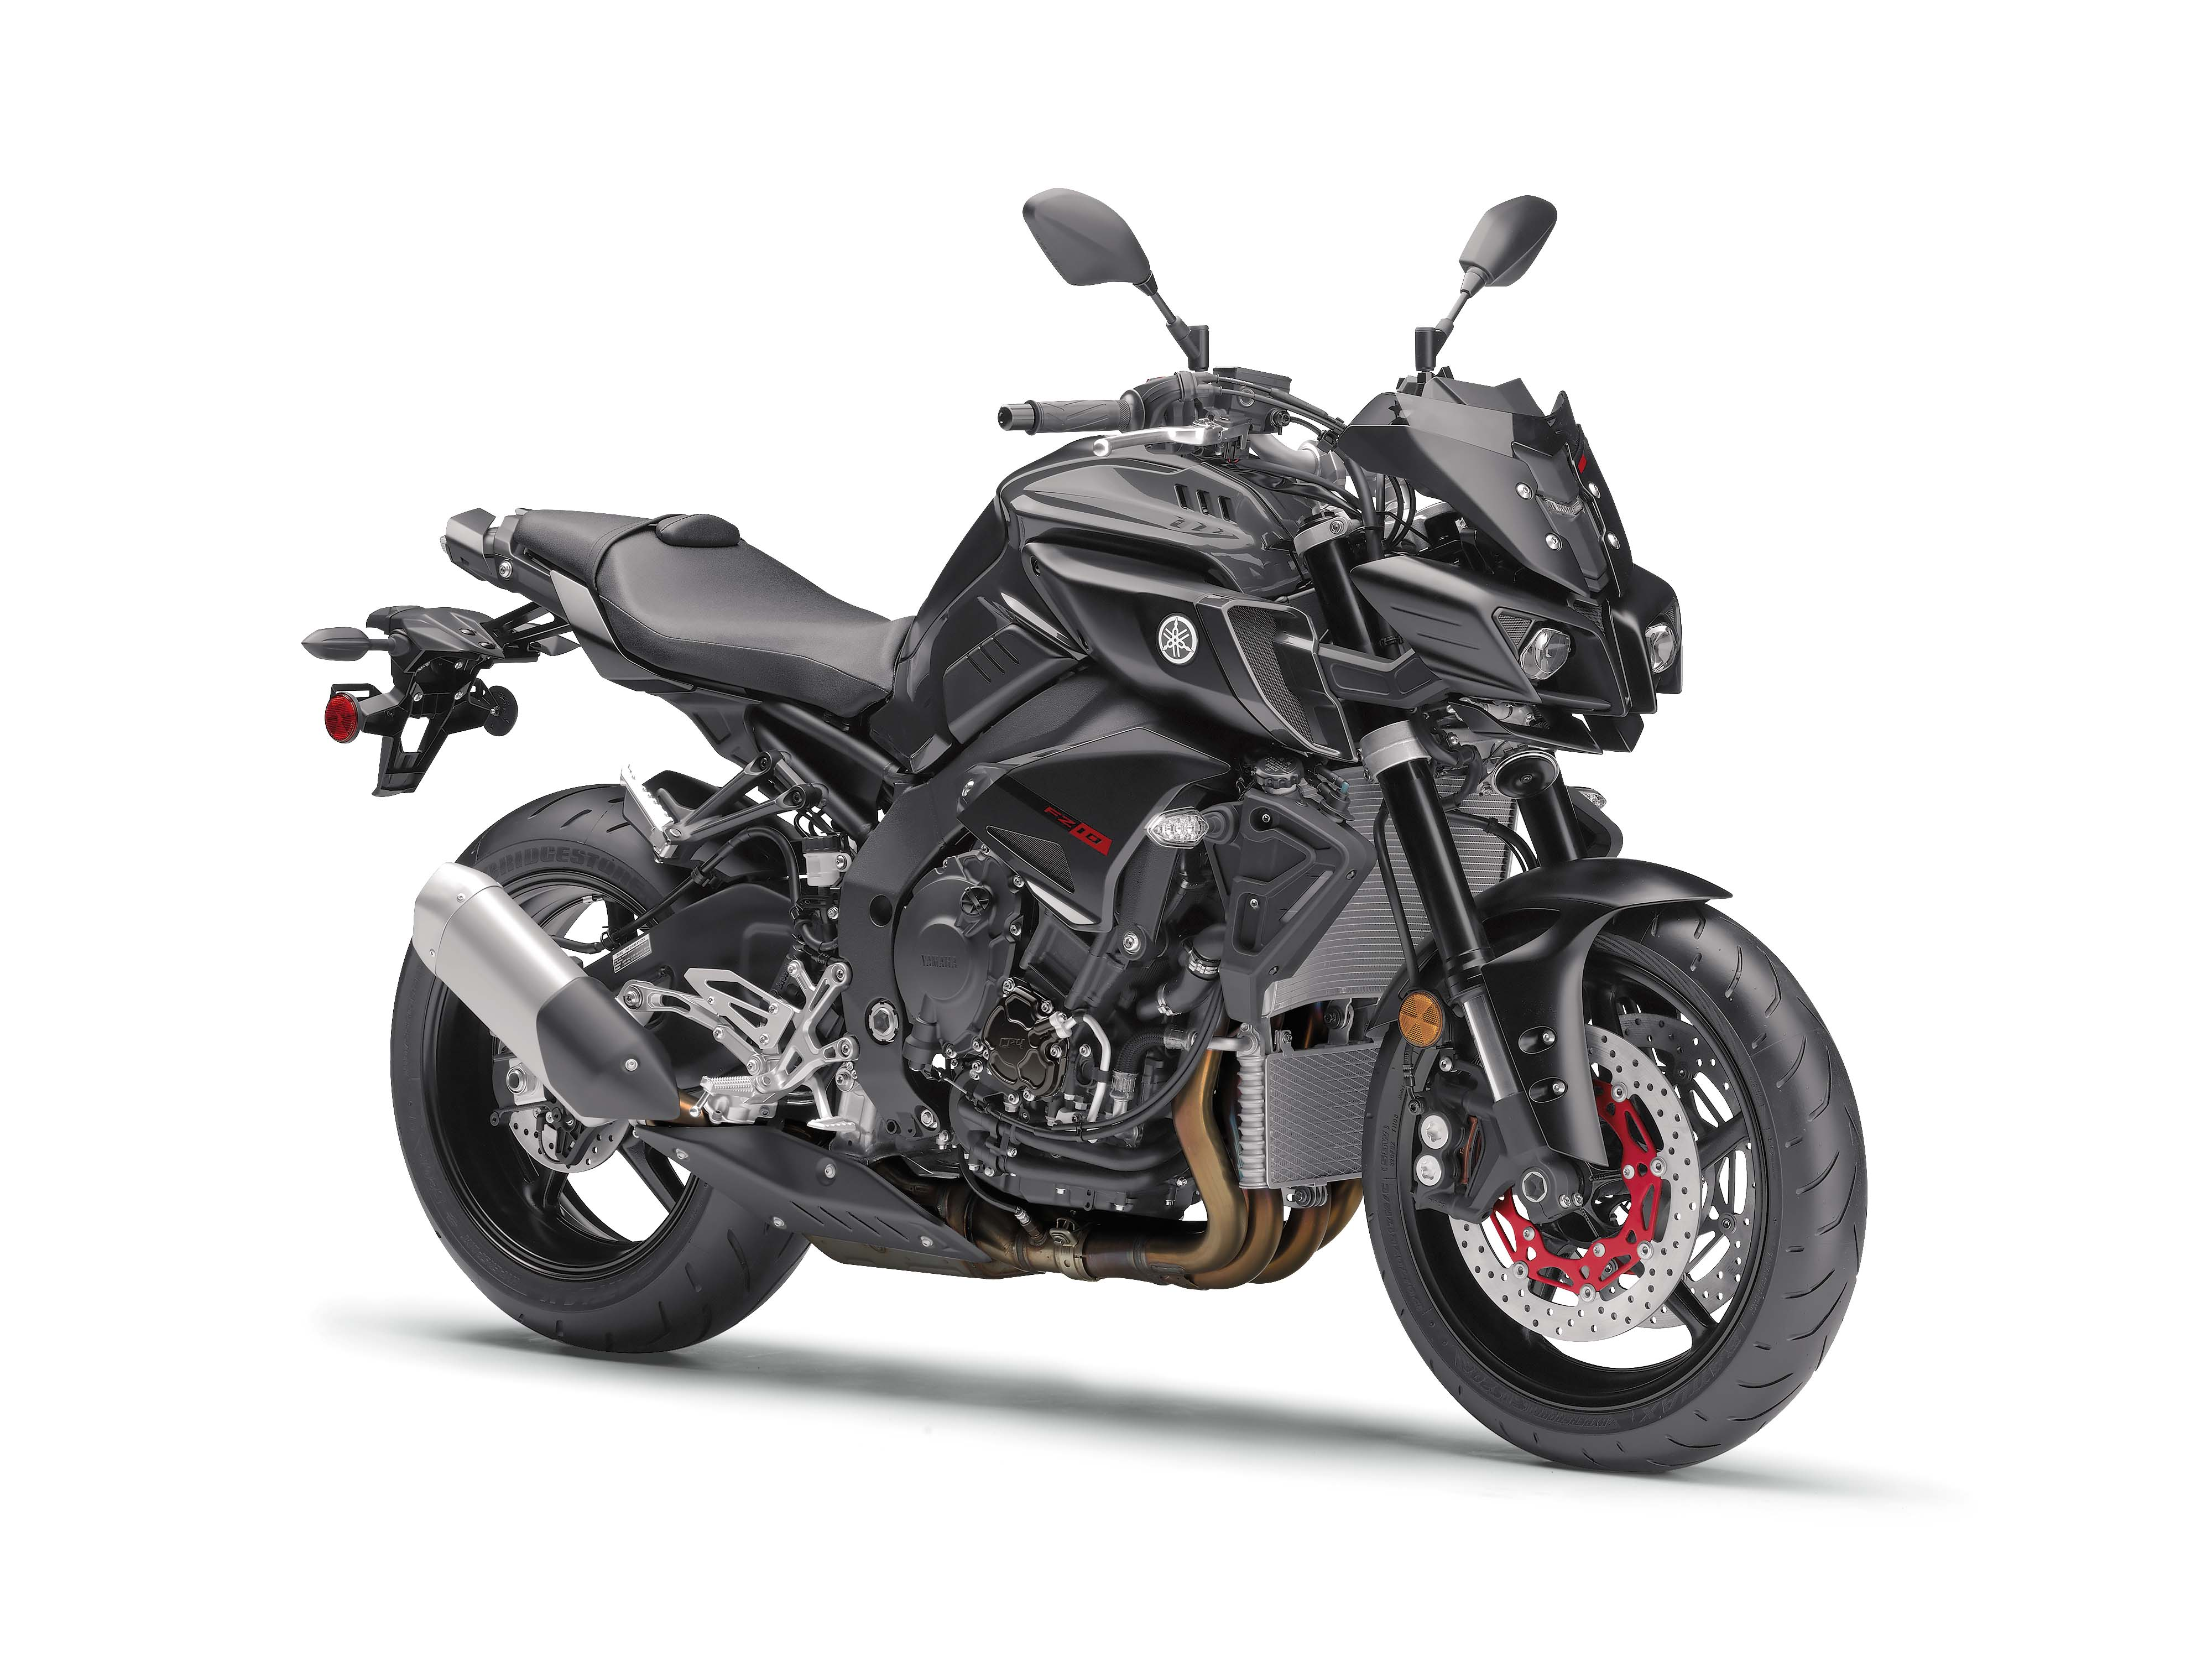 2017 Yamaha Fz 10 Officially Coming To The Usa In June